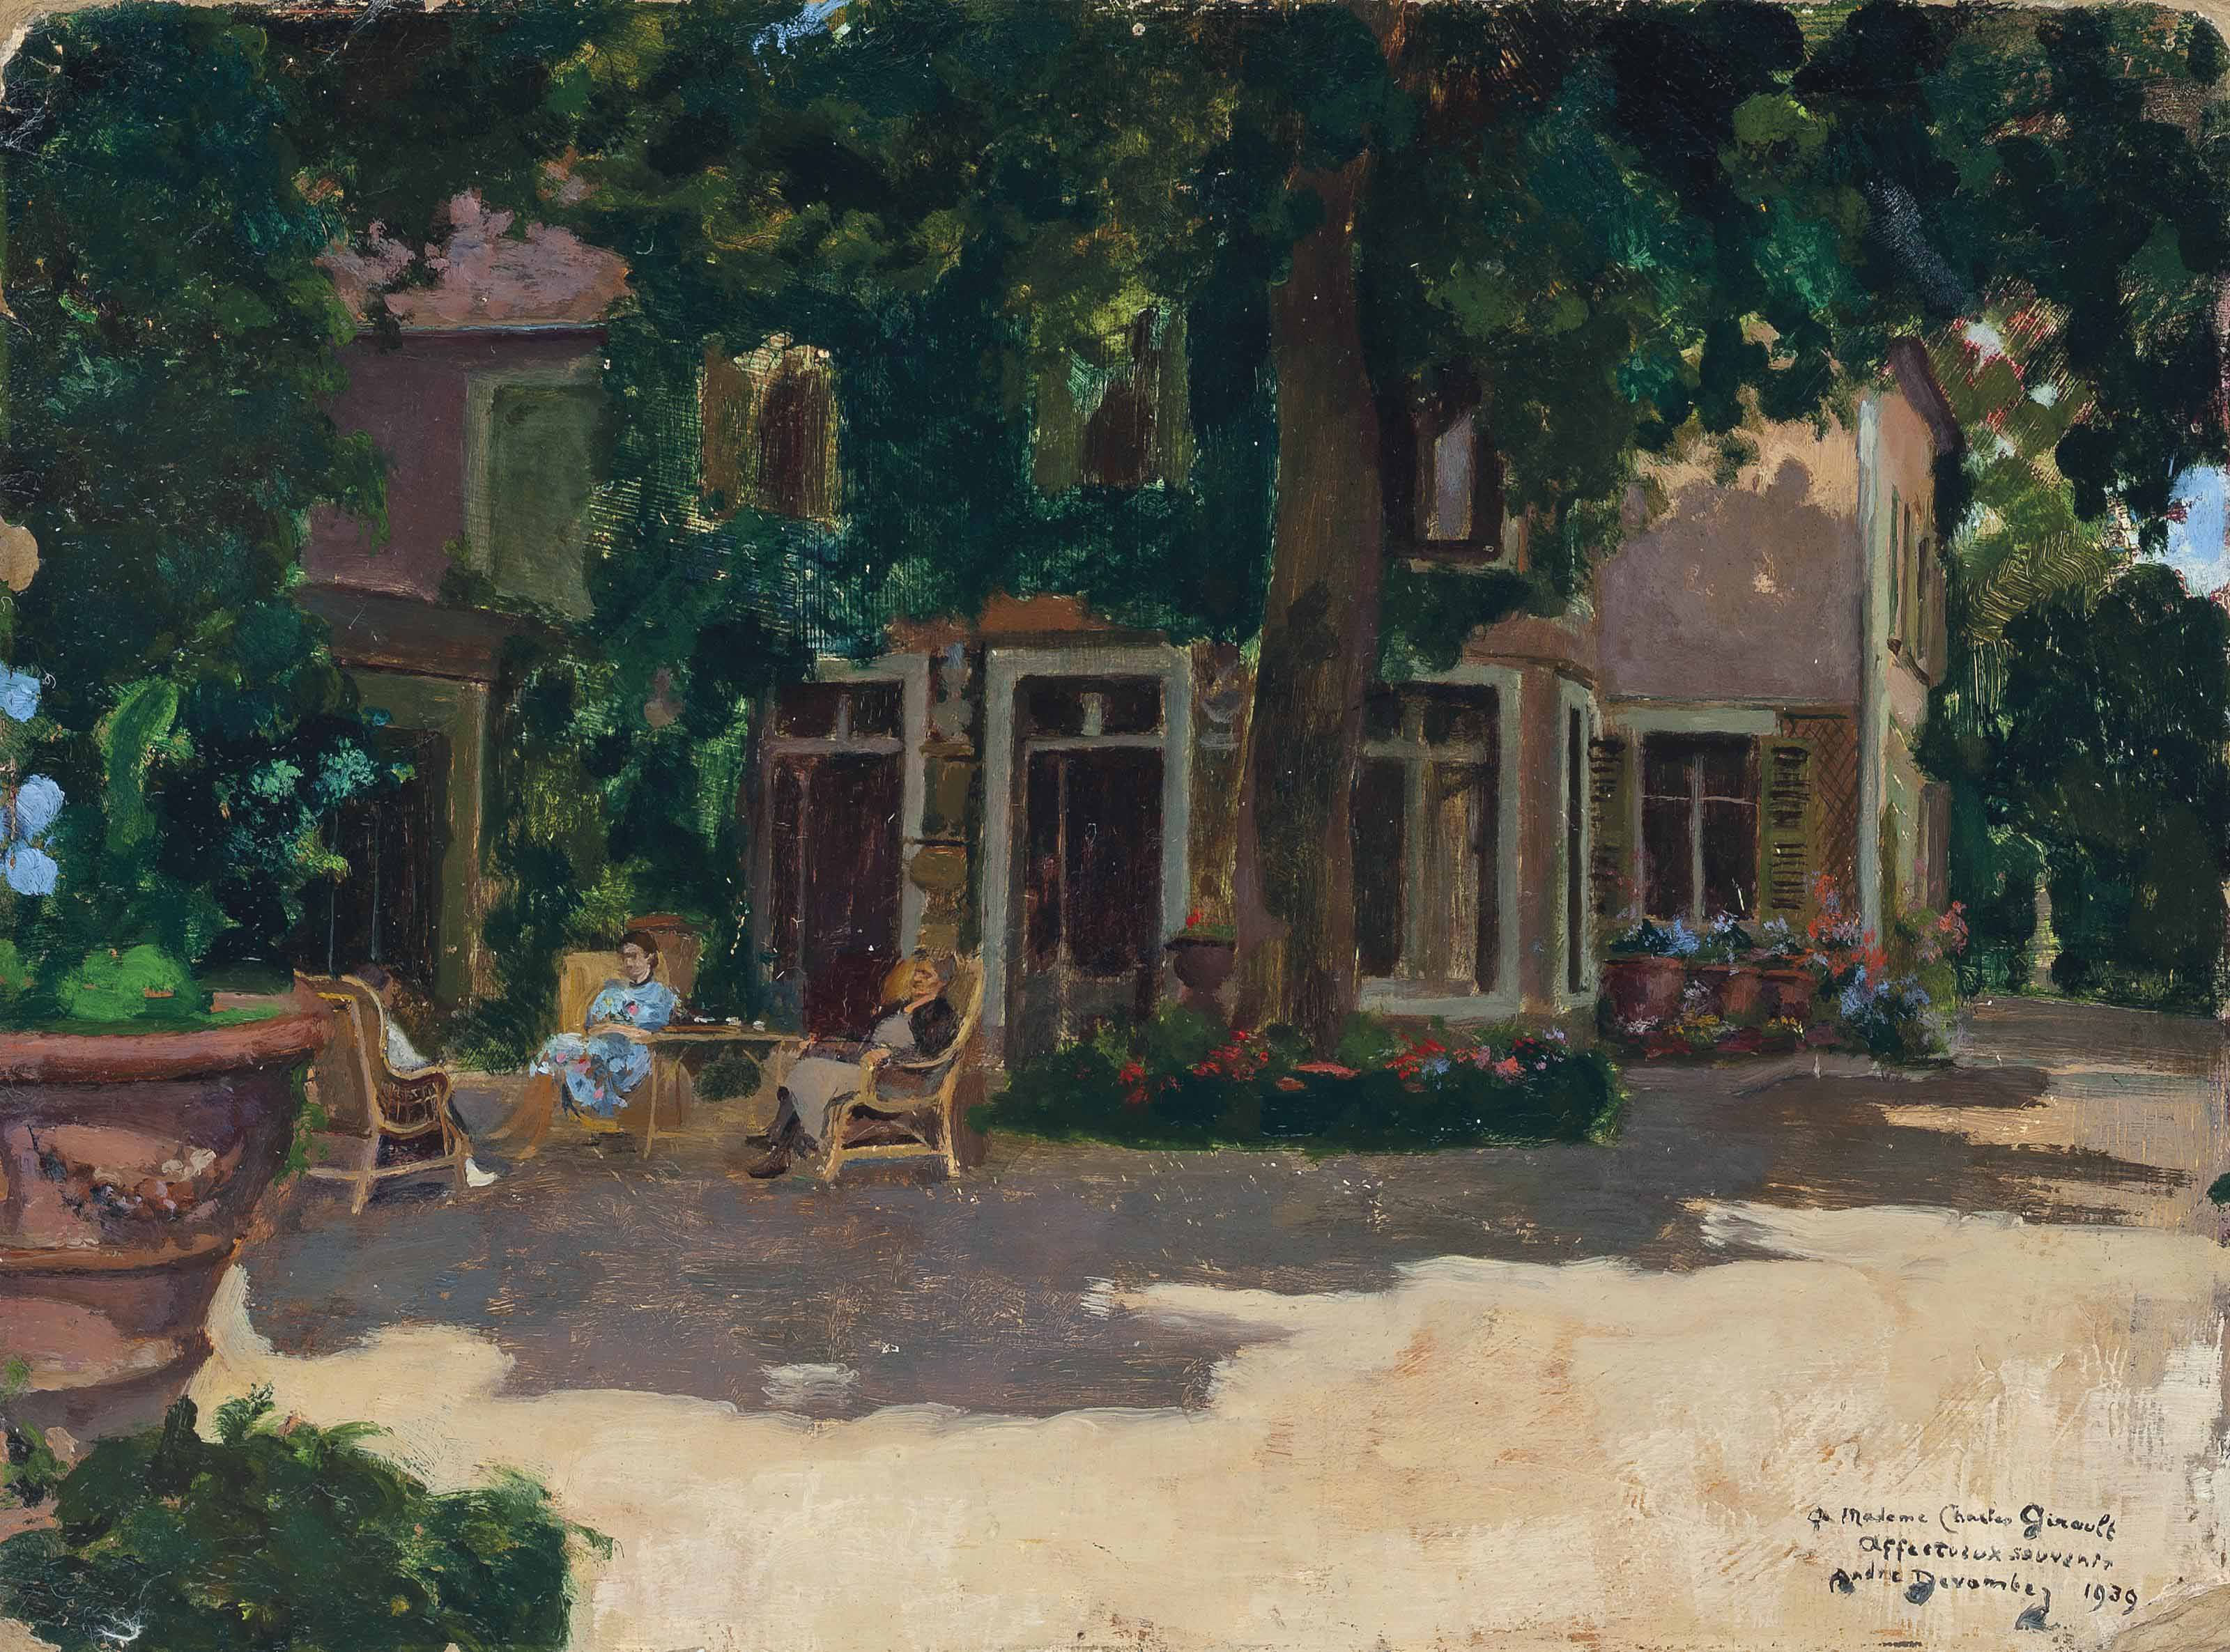 Afternoon tea in the shade